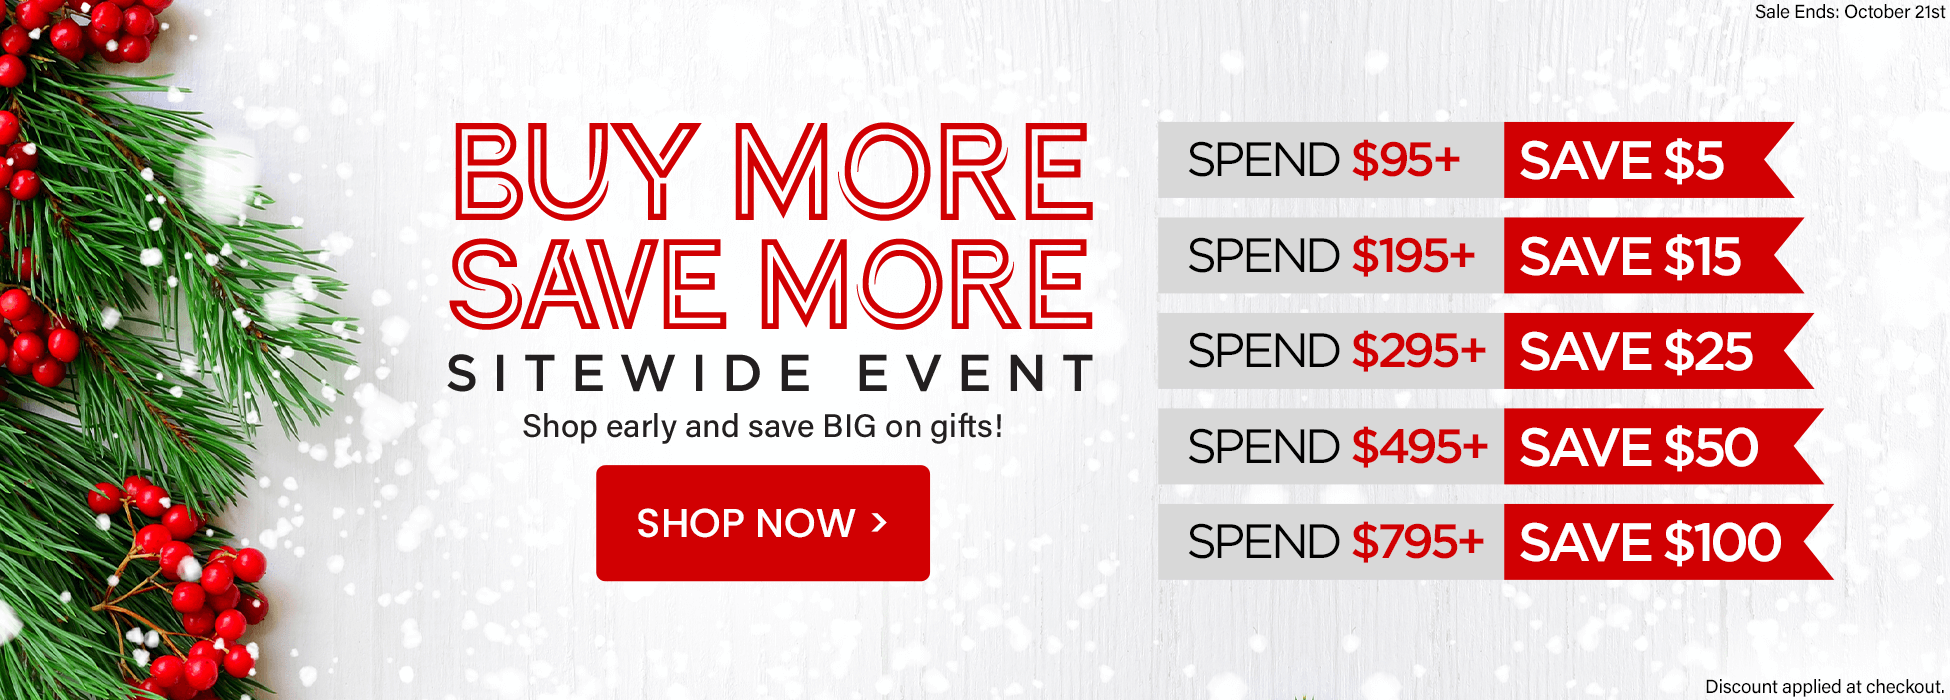 Holiday sale buy more save more